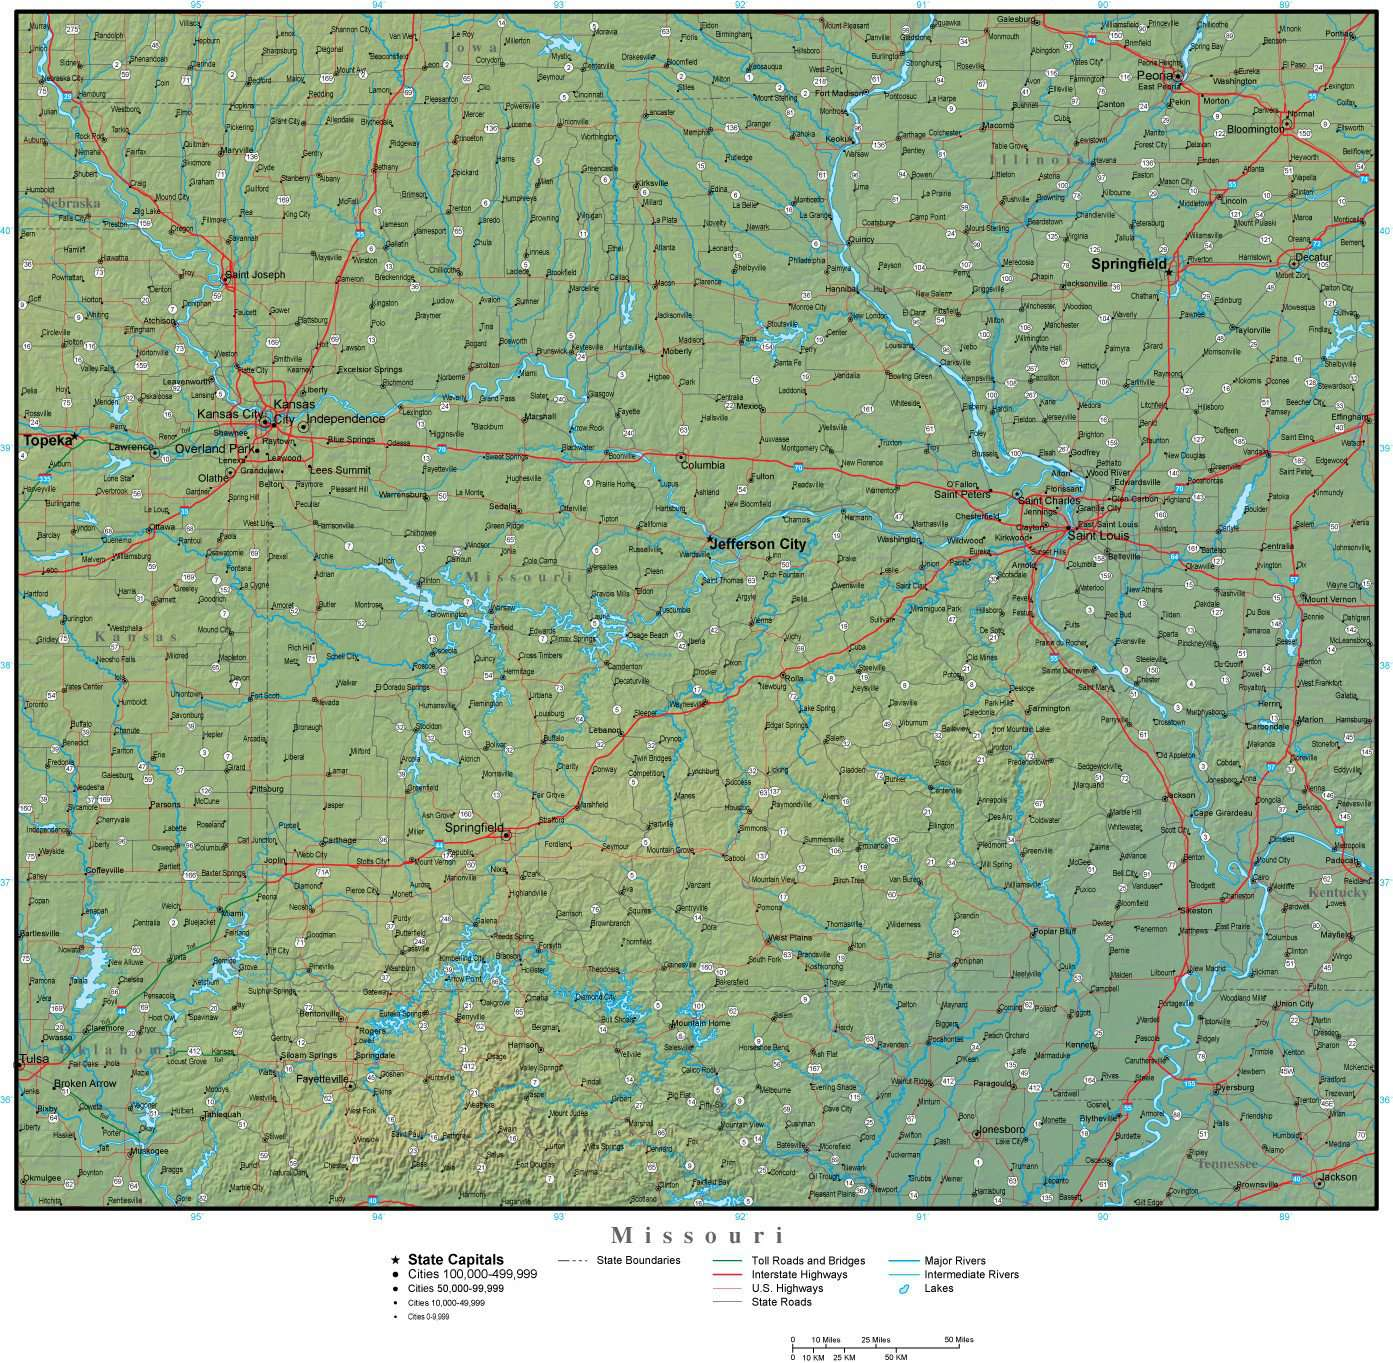 Missouri Map With County Lines.Missouri State Map Plus Terrain With Cities Roads Map Resources